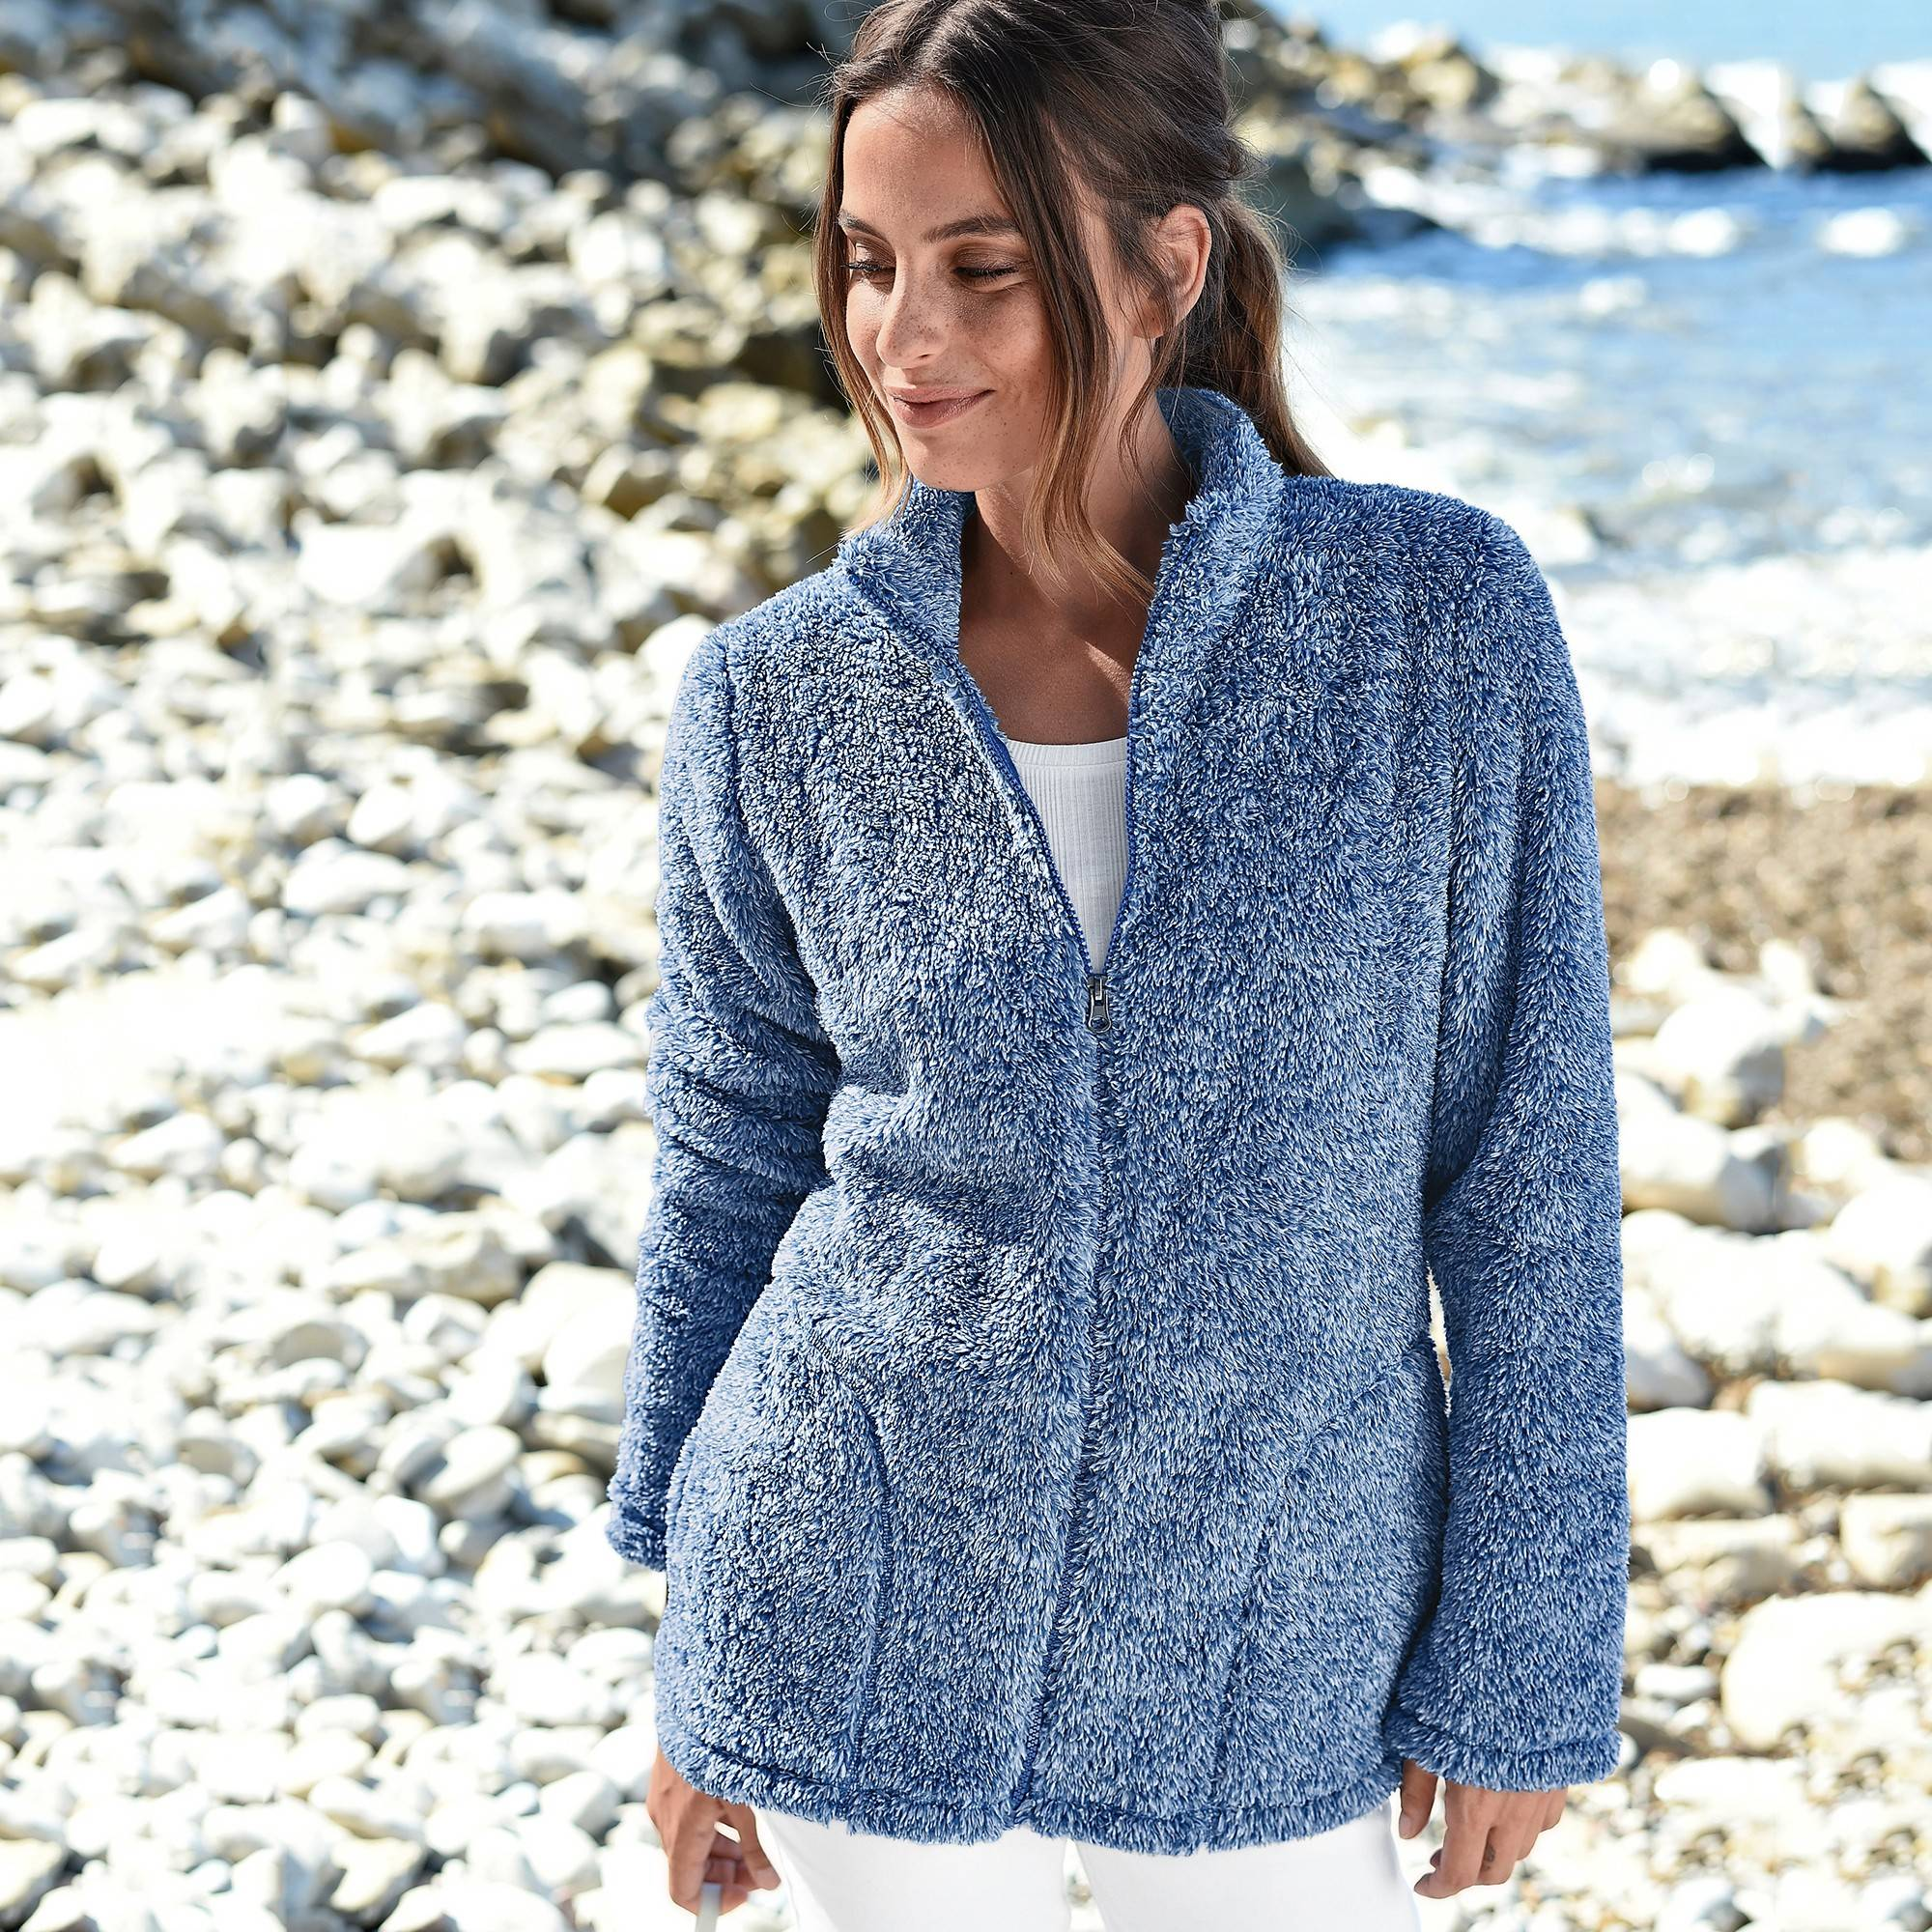 Casual Collection Veste maille peluche - Bleu - Taille : 46,48 - Blancheporte